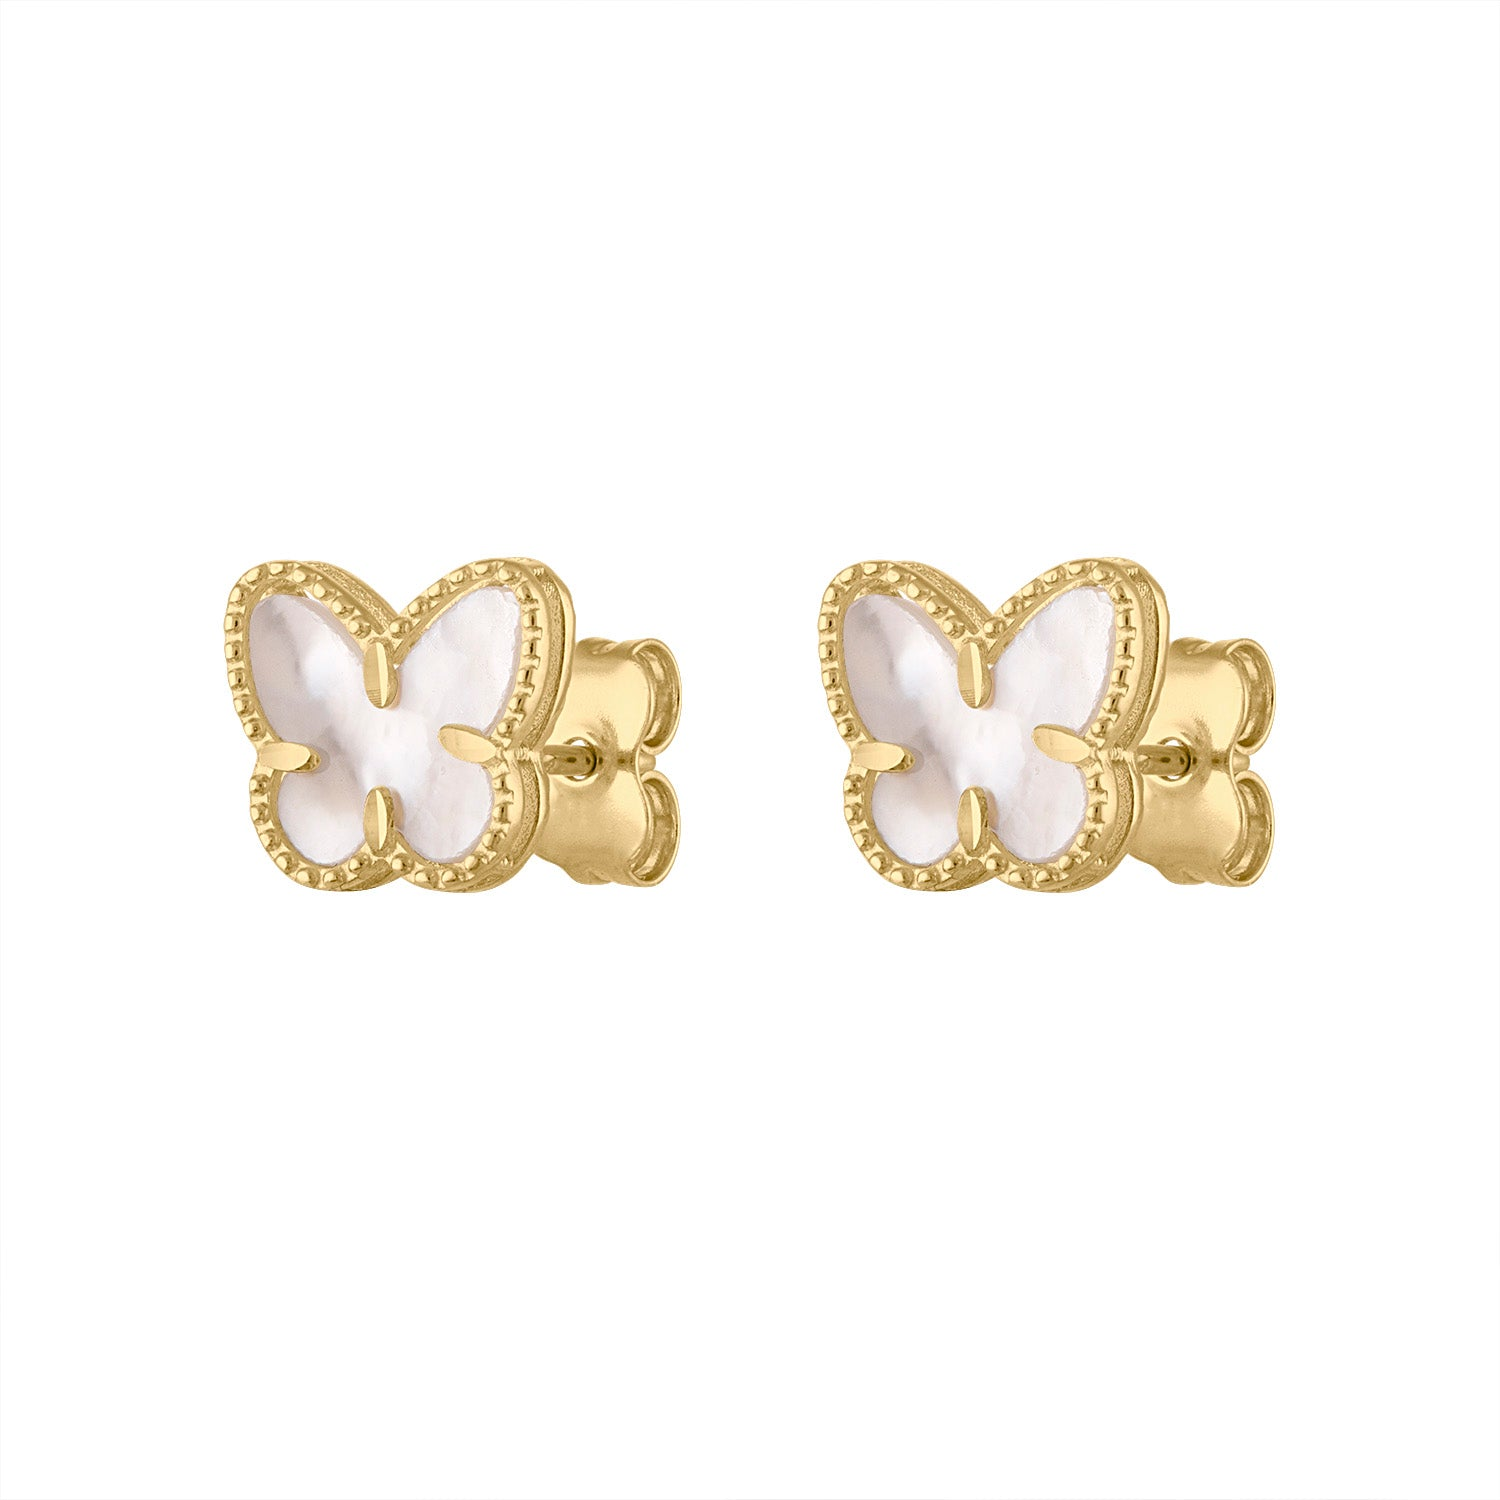 14KT GOLD MOTHER OF PEARL BUTTERFLY STUD EARRING